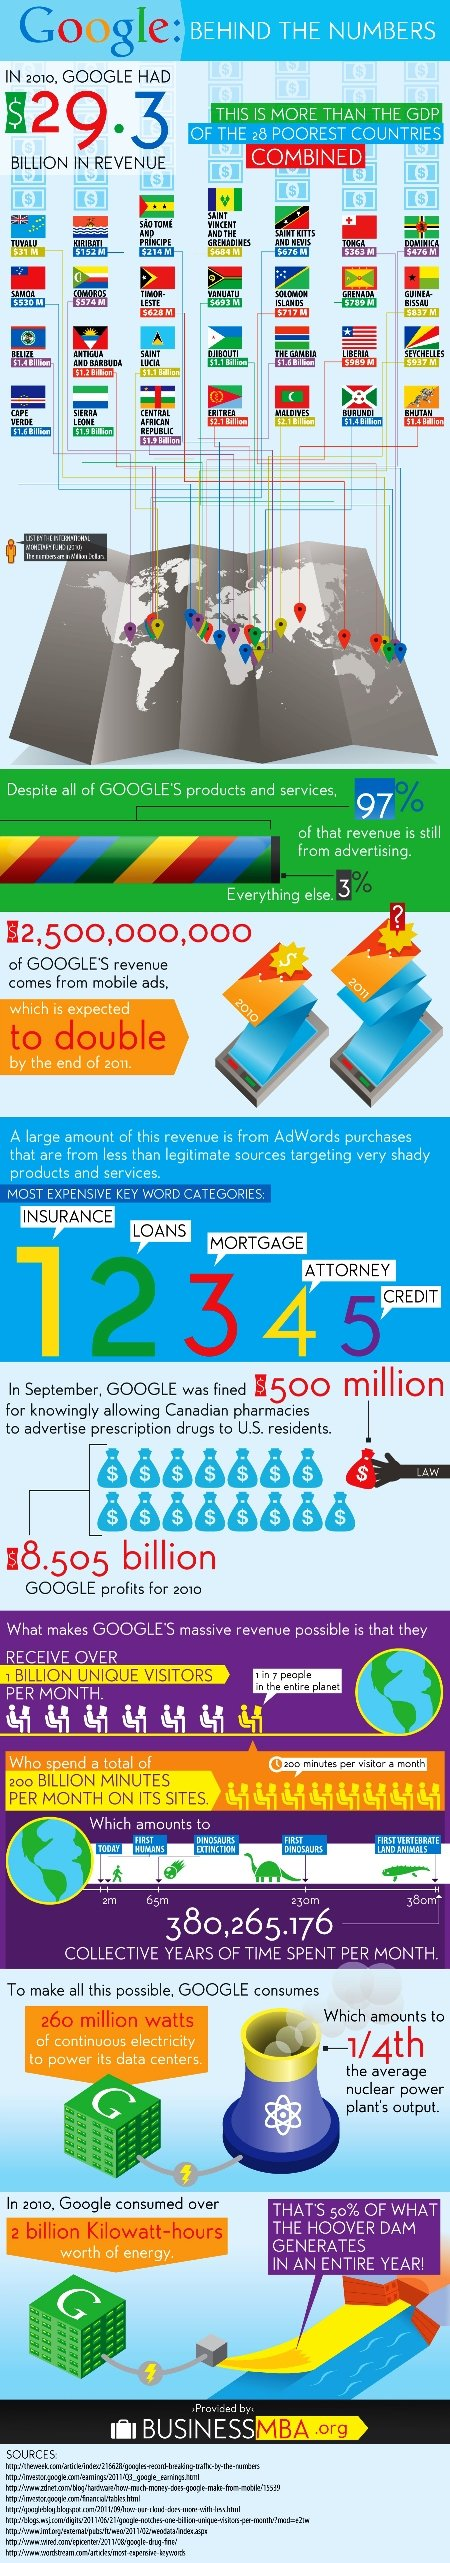 google behind the numbers #infographic